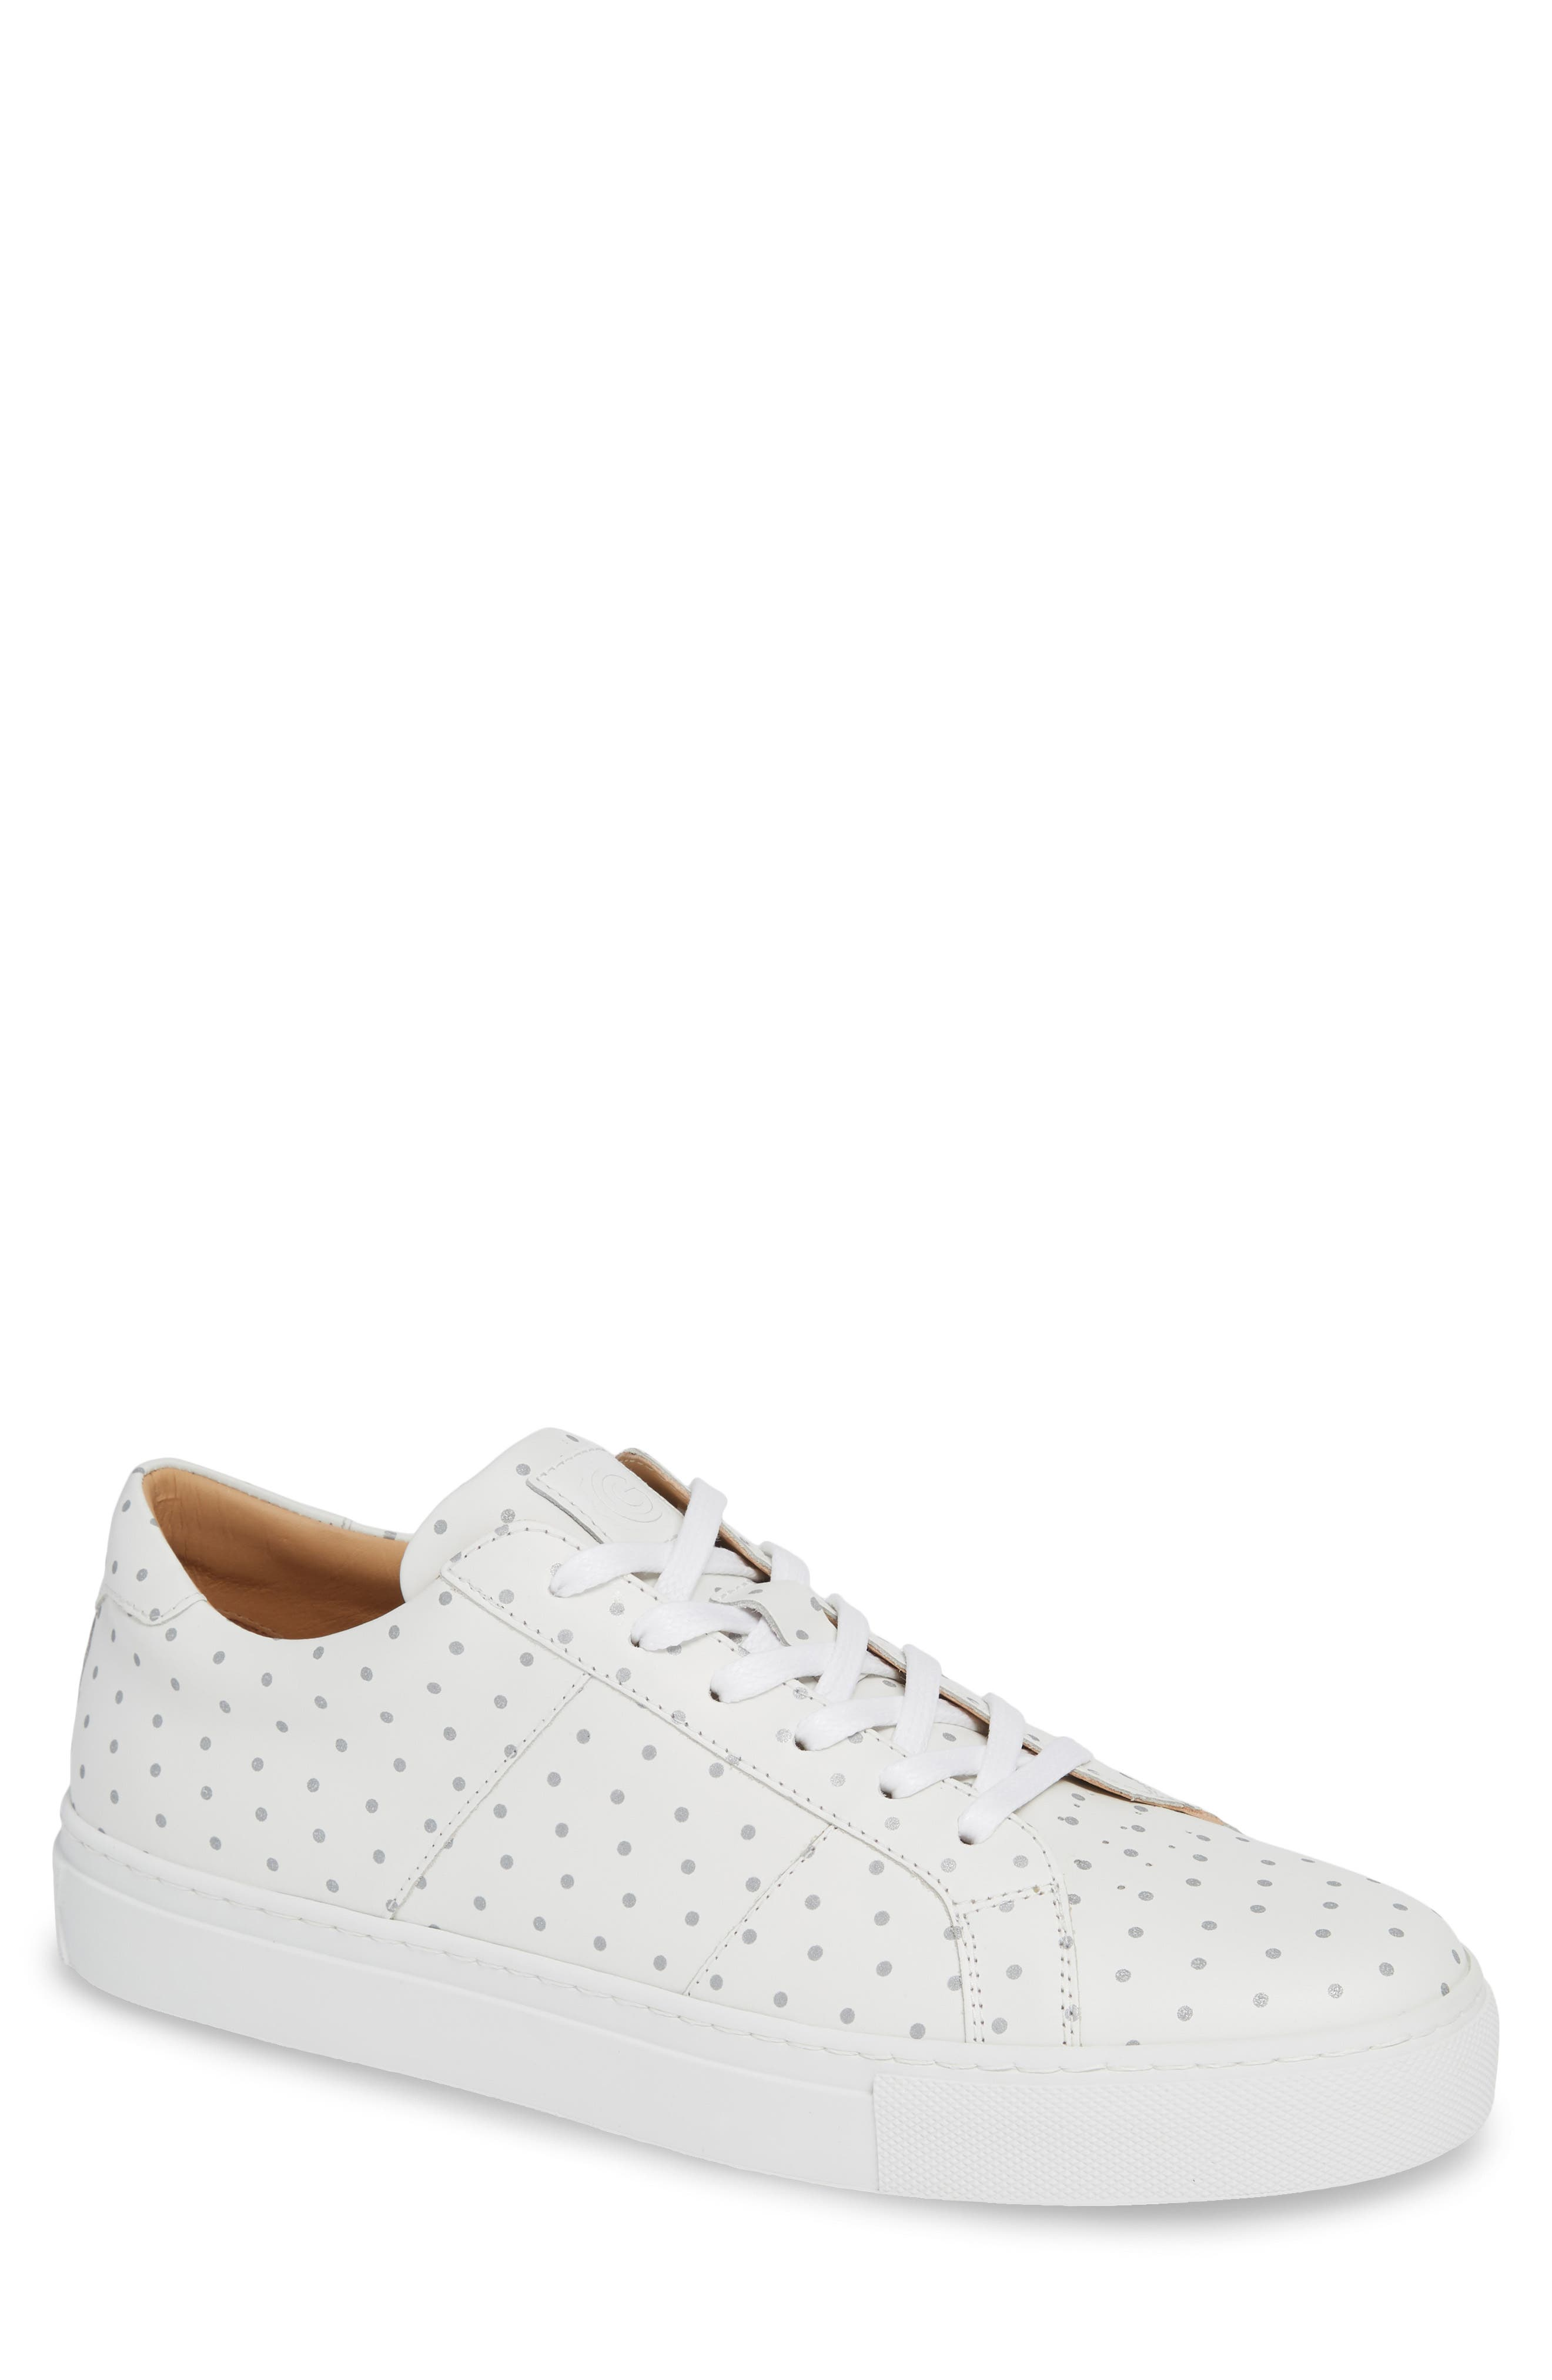 Nick Wooster x GREATS Royale Dots Low Top Sneaker,                         Main,                         color, WHITE W/ 3M DOTS